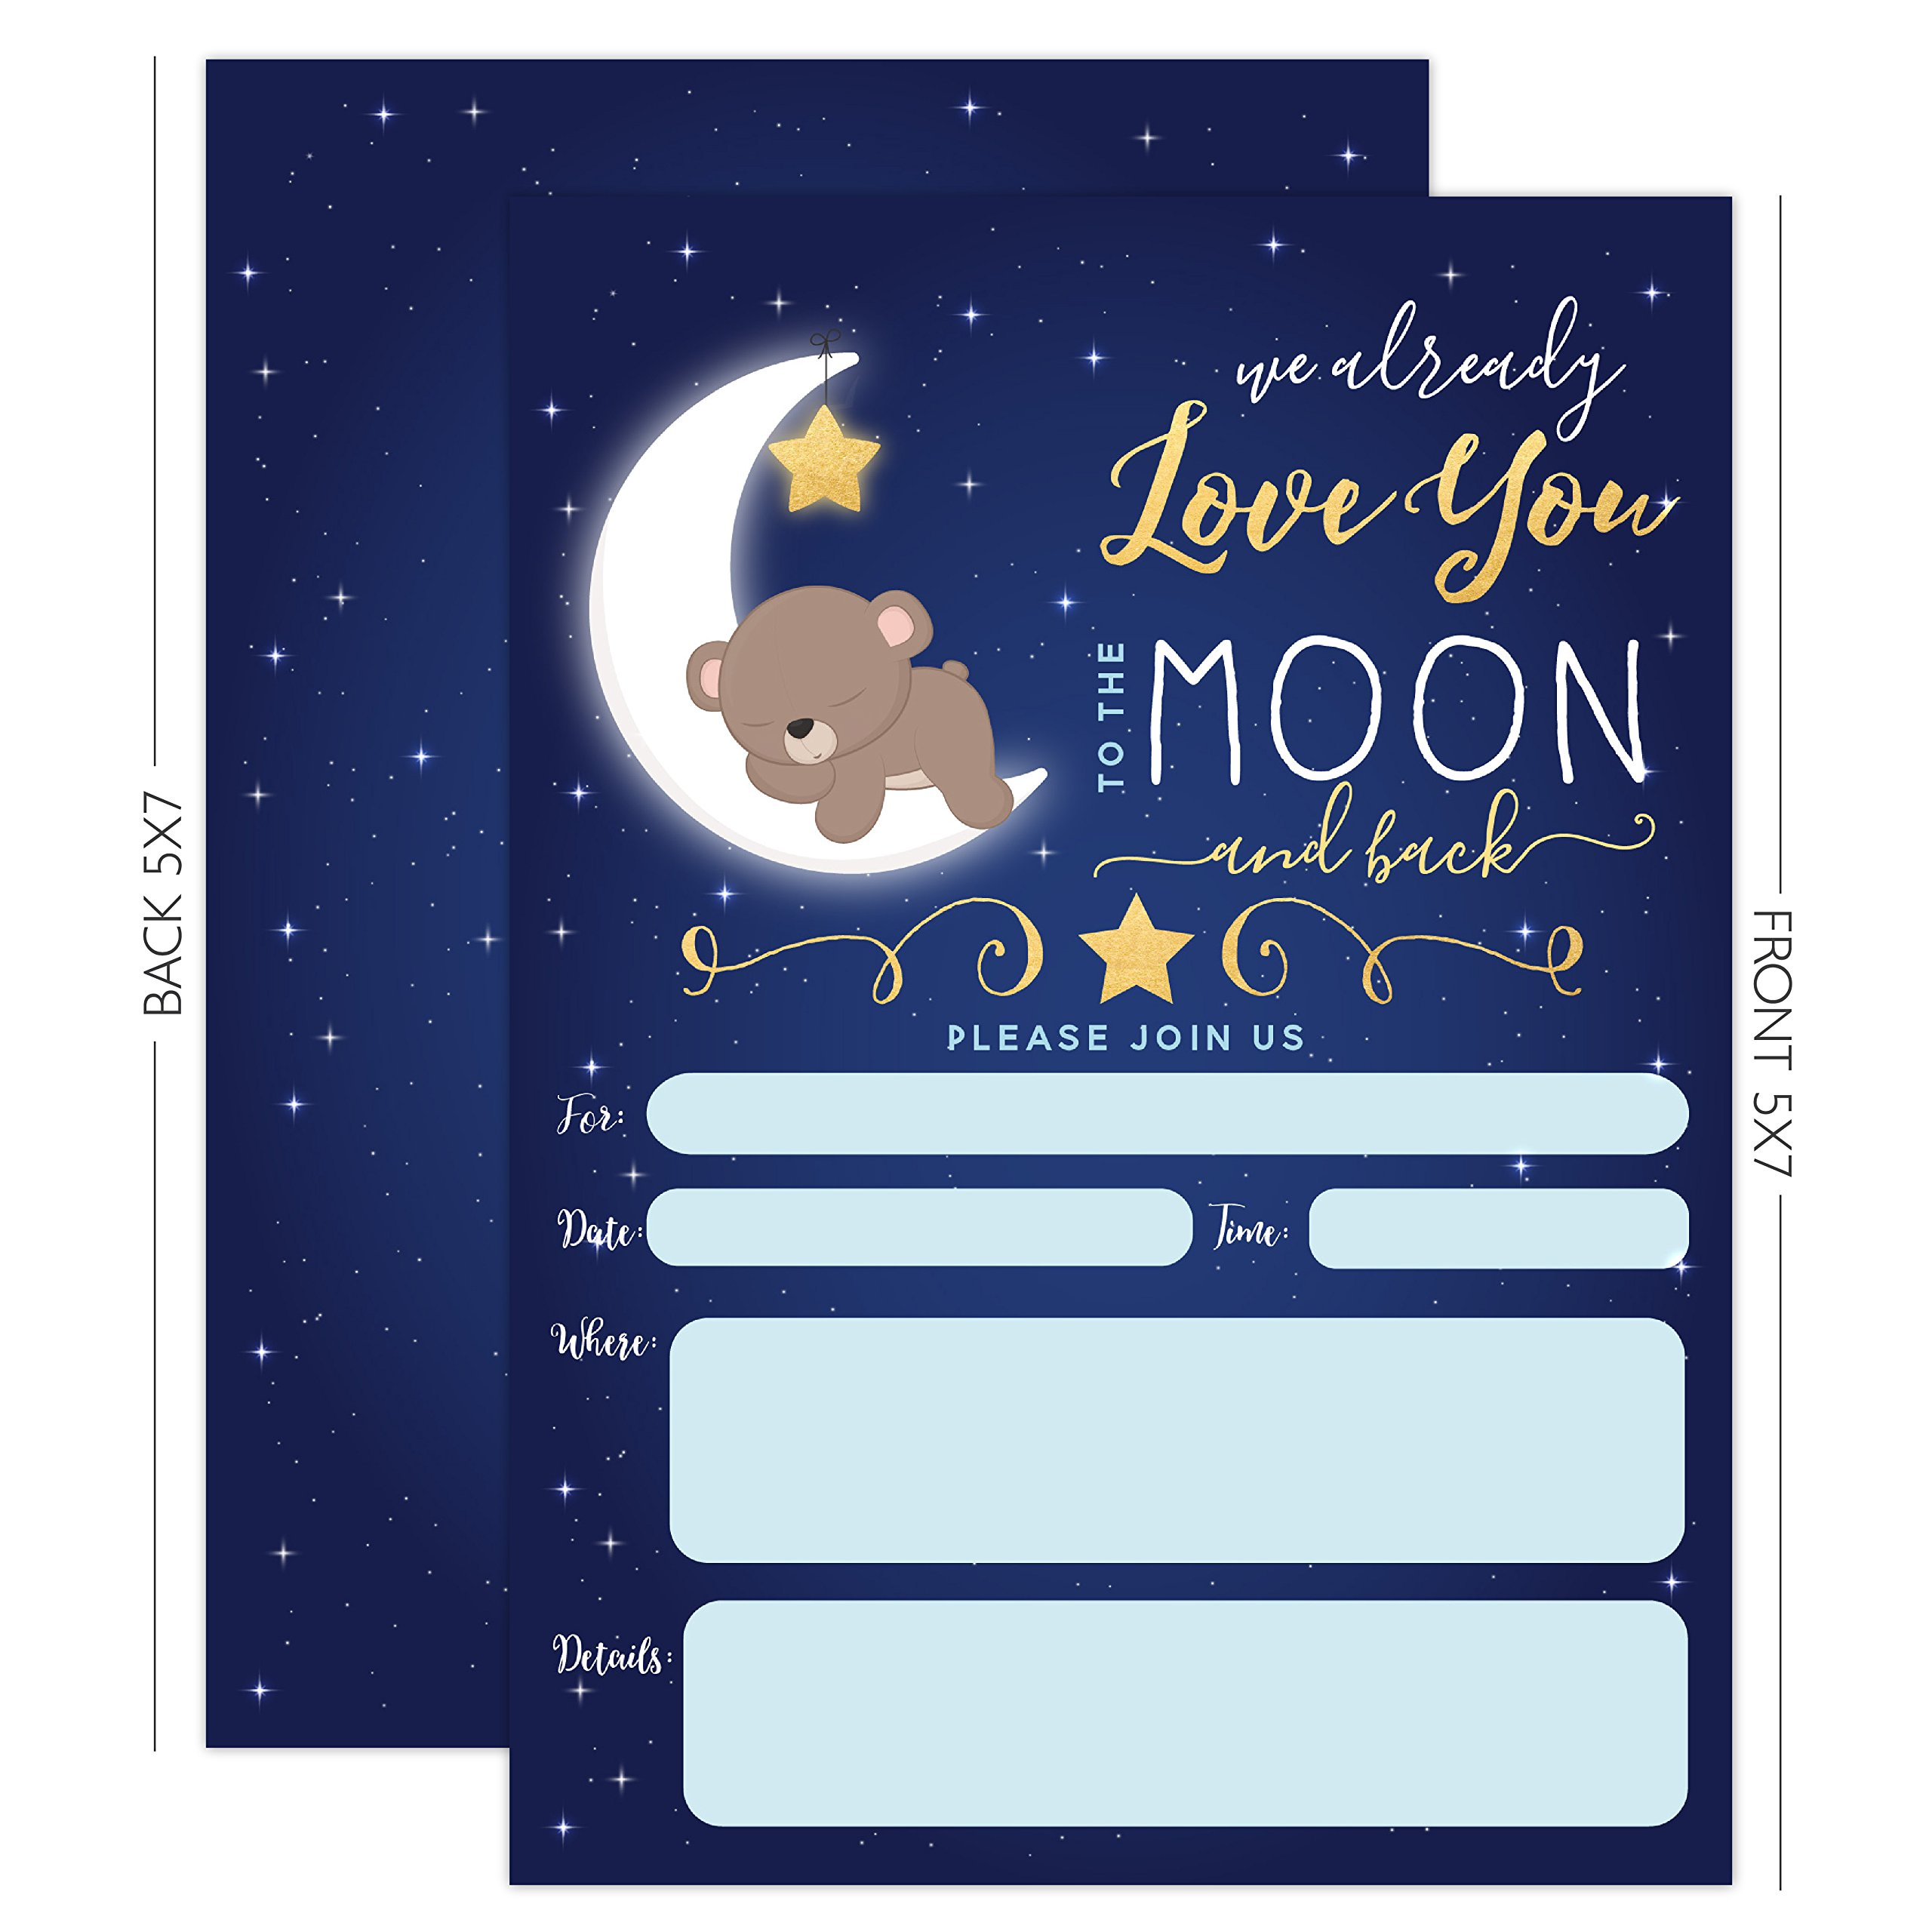 Boy Baby Shower Invitation, Love You To the Moon and back Baby Shower Invitation, Bear Baby Shower invite, Twinkle Twinkle Little Sar, 20 Fill in Invitations and Envelopes by Your Main Event Prints (Image #5)